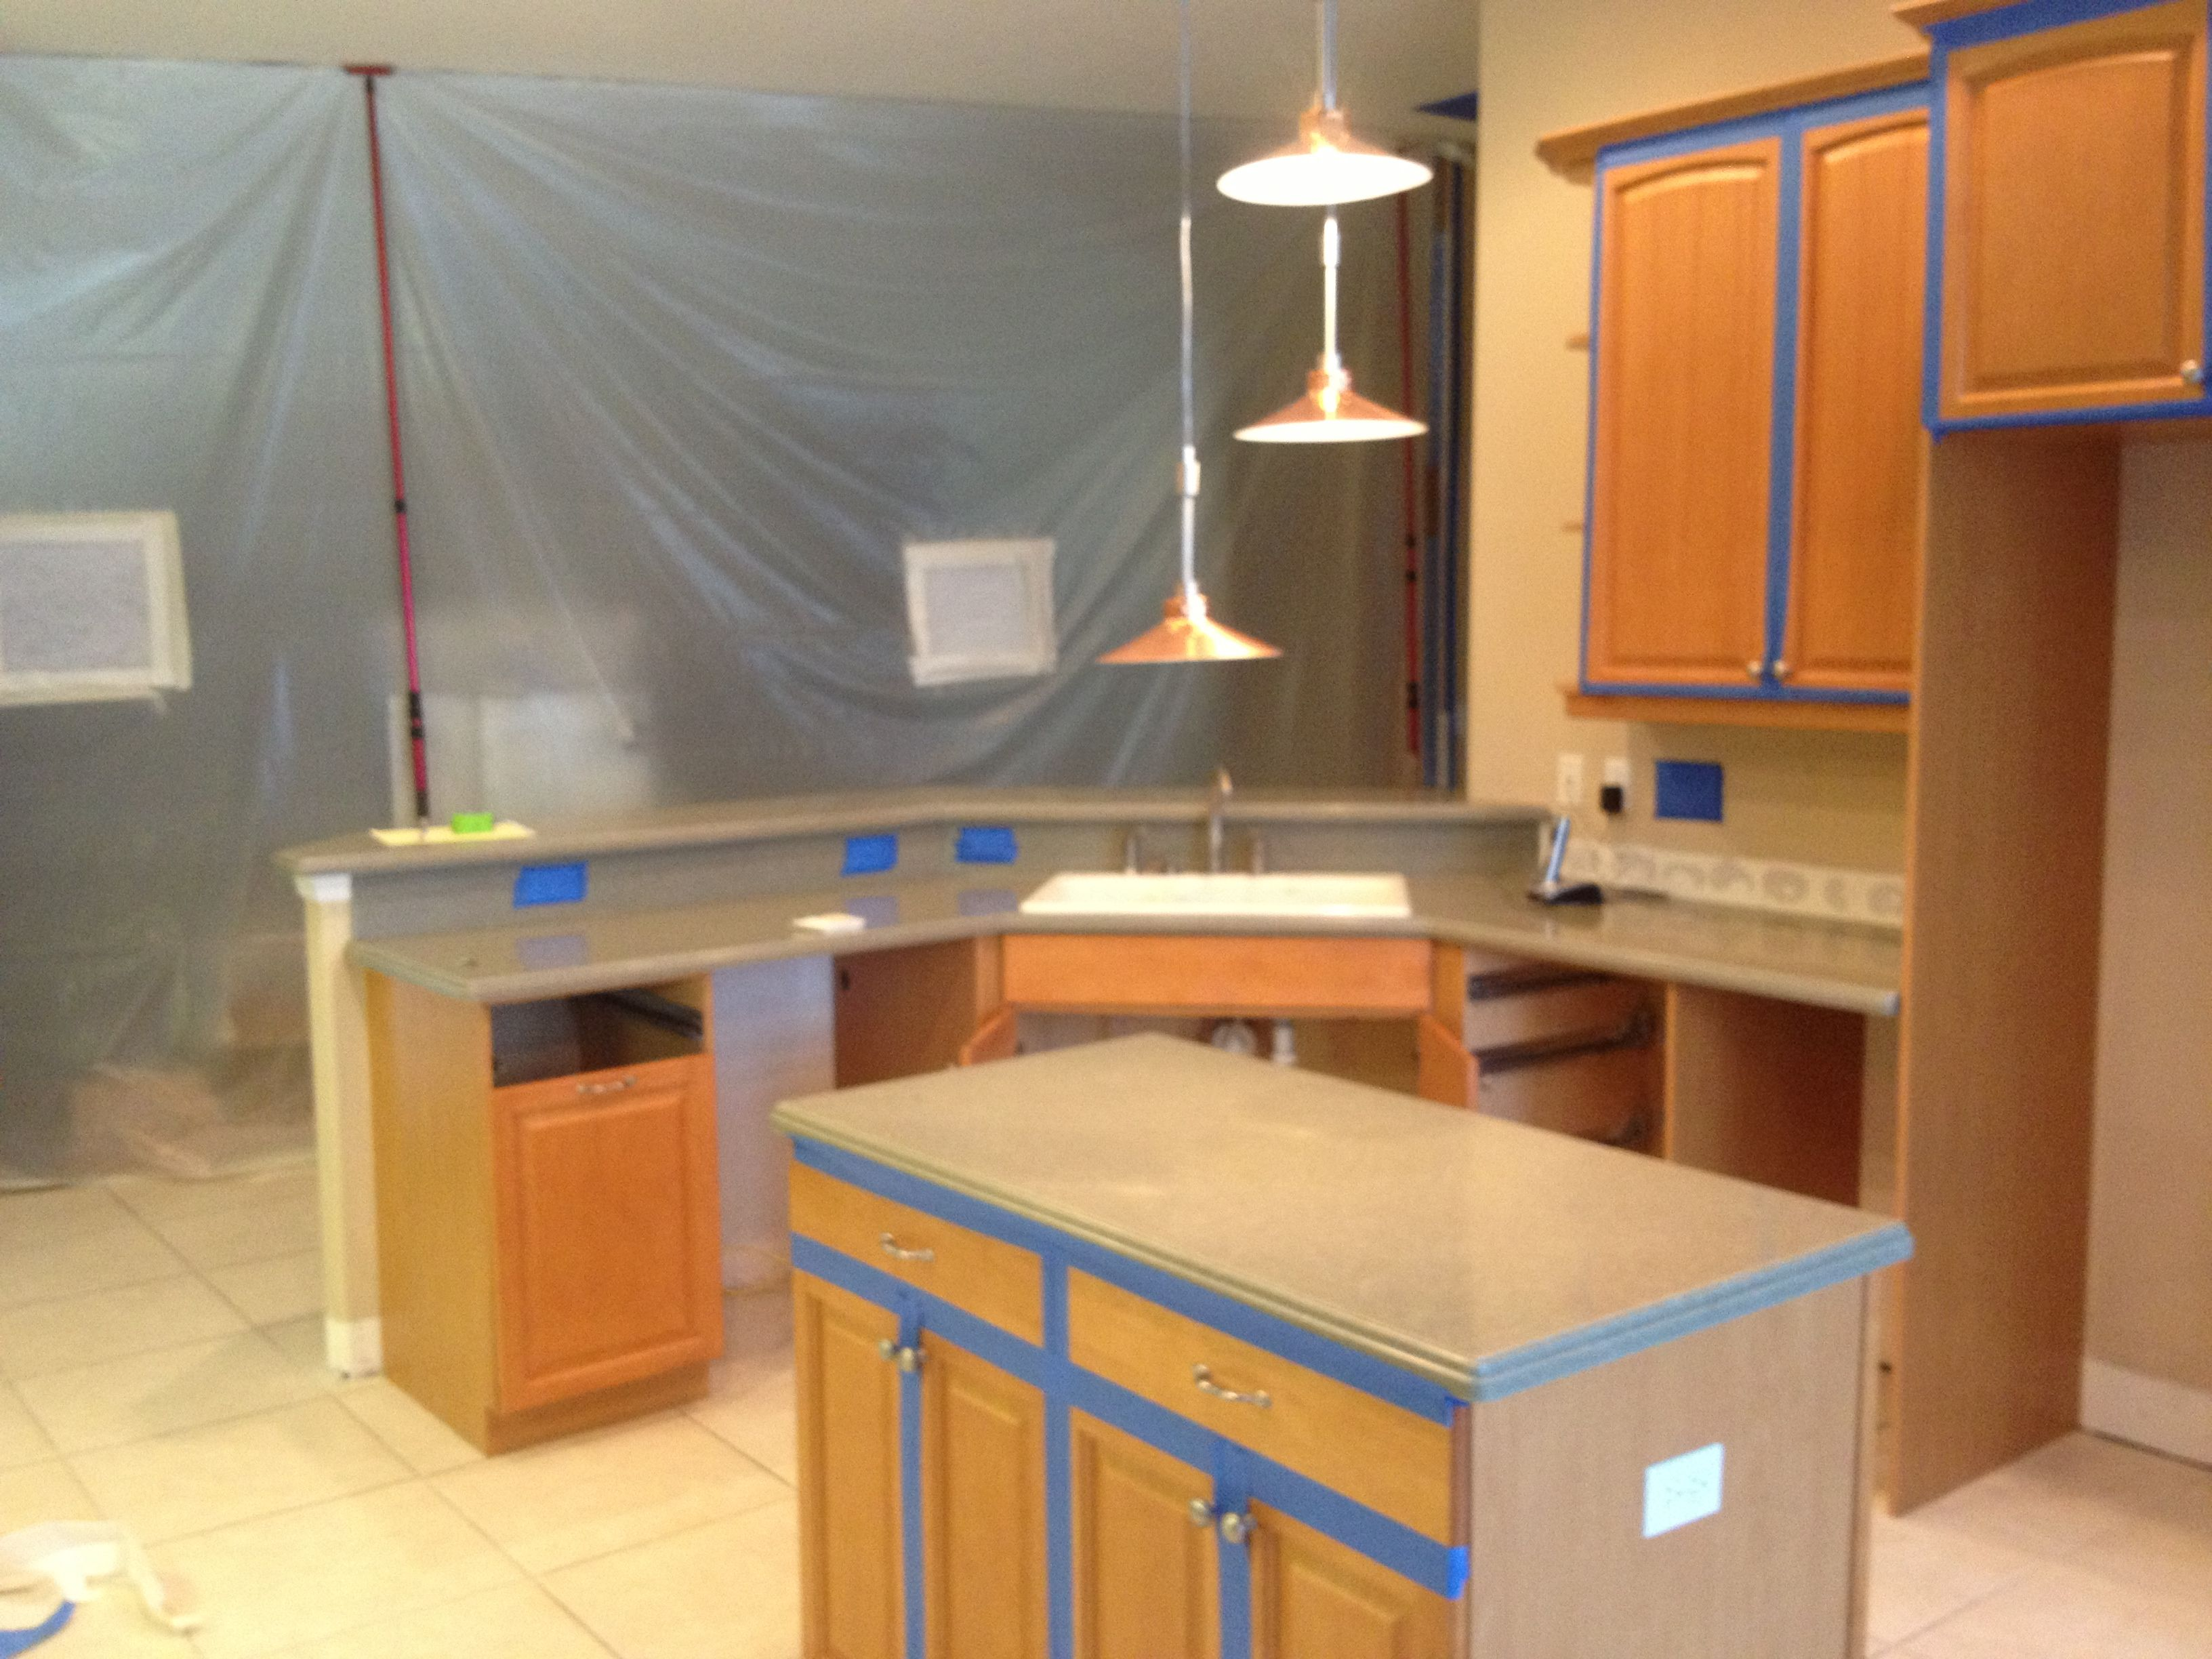 Kitchen Sealed Off From Rest Of Home Ready Of Post Remediation Air Test Home Home Decor Corner Desk